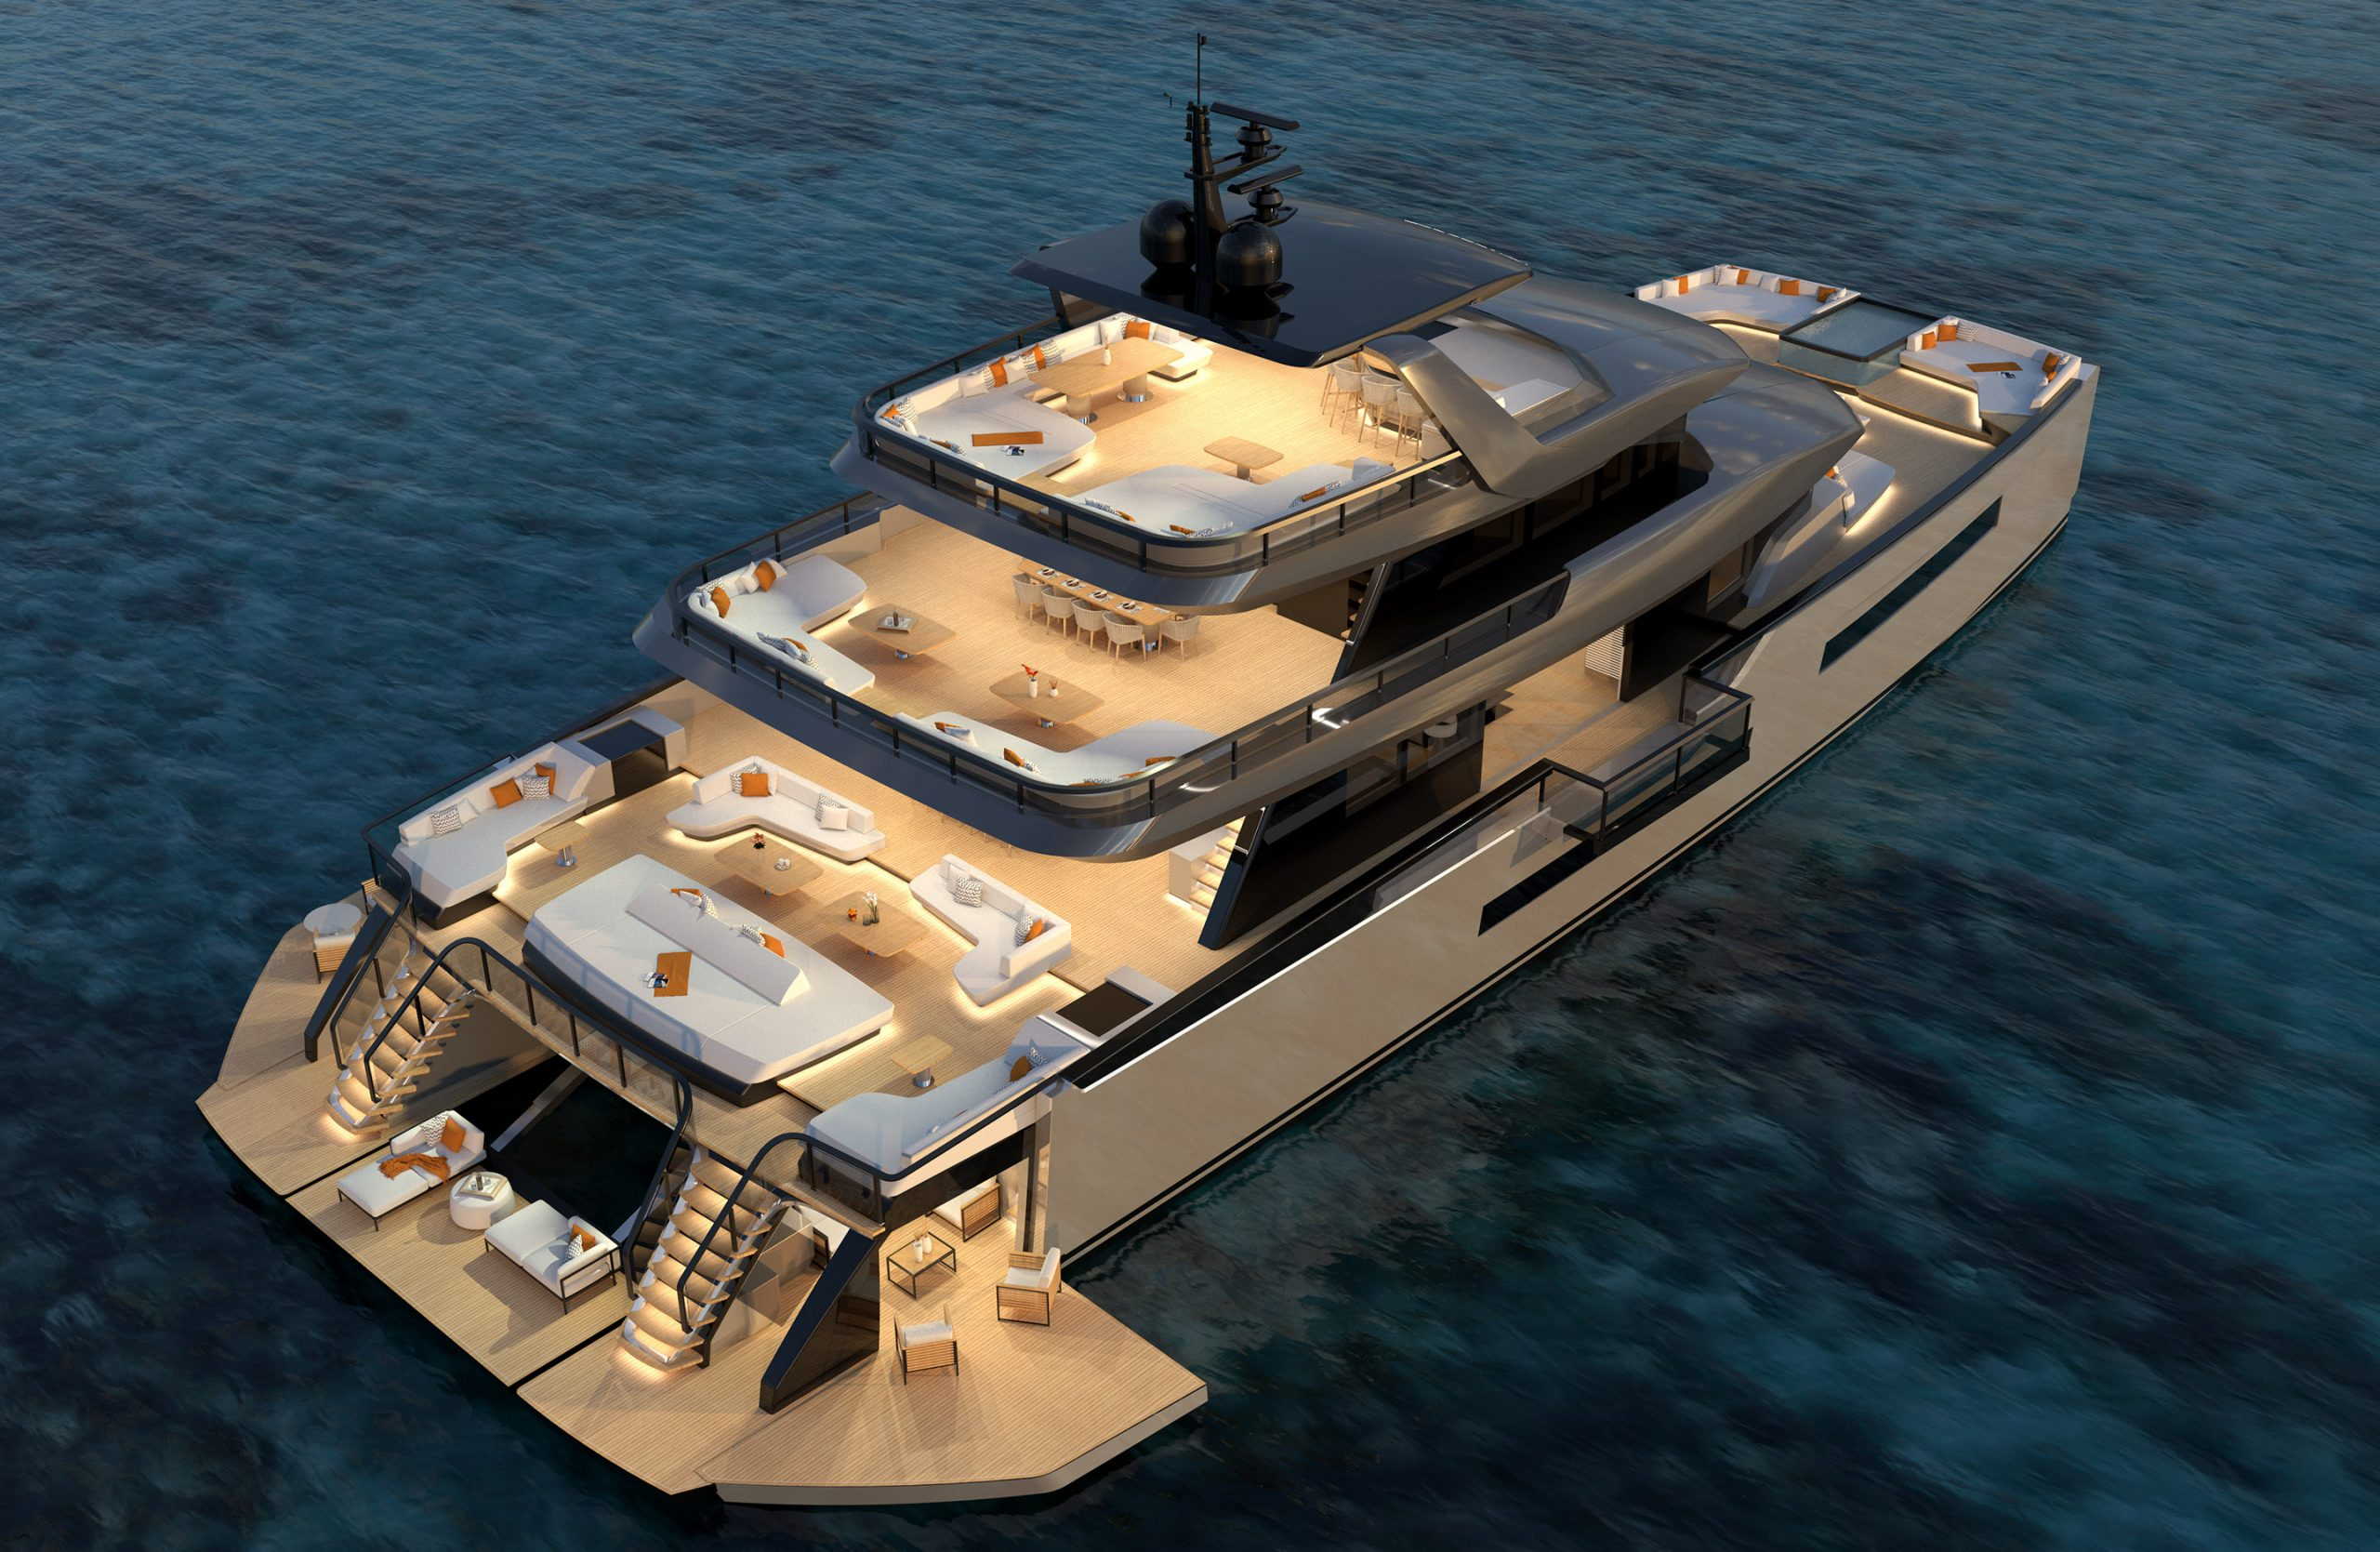 Alquiler barcos lujo - Image licensed to Lloyd Images Pictures of the super yacht Forever One Credit: Lloyd Images